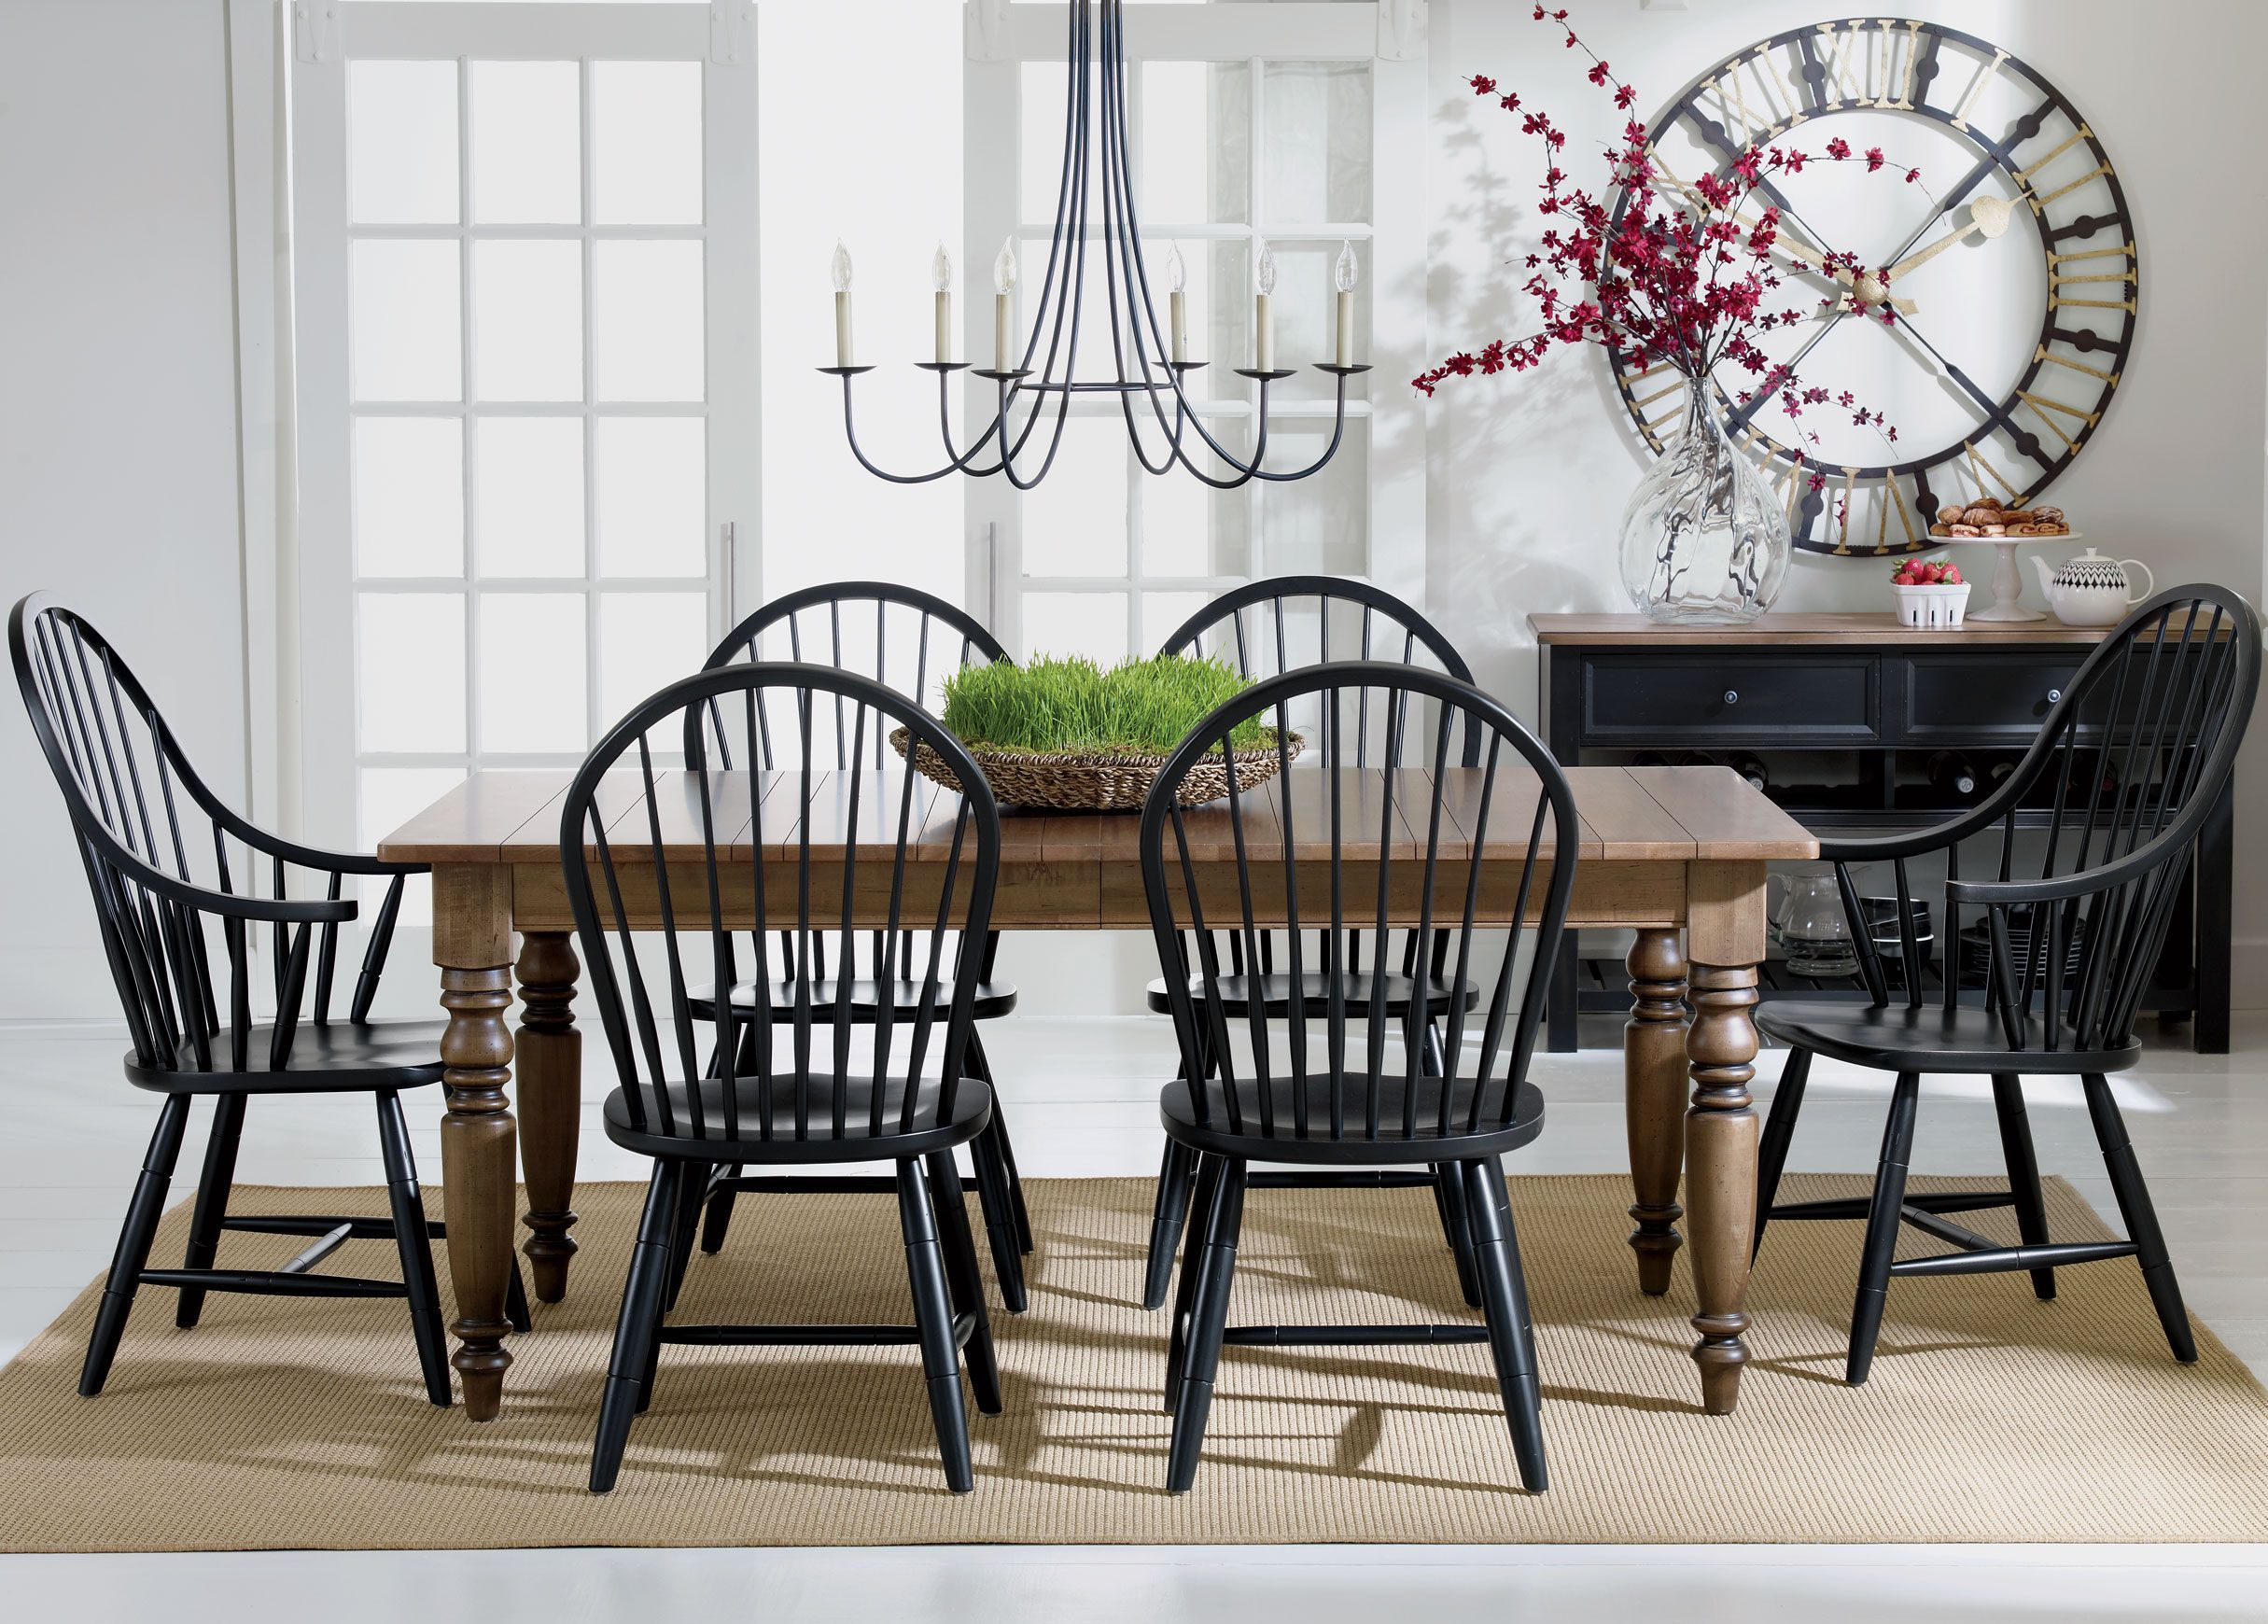 Ethan Allen Miller Dining Table Black Windsor chairs black